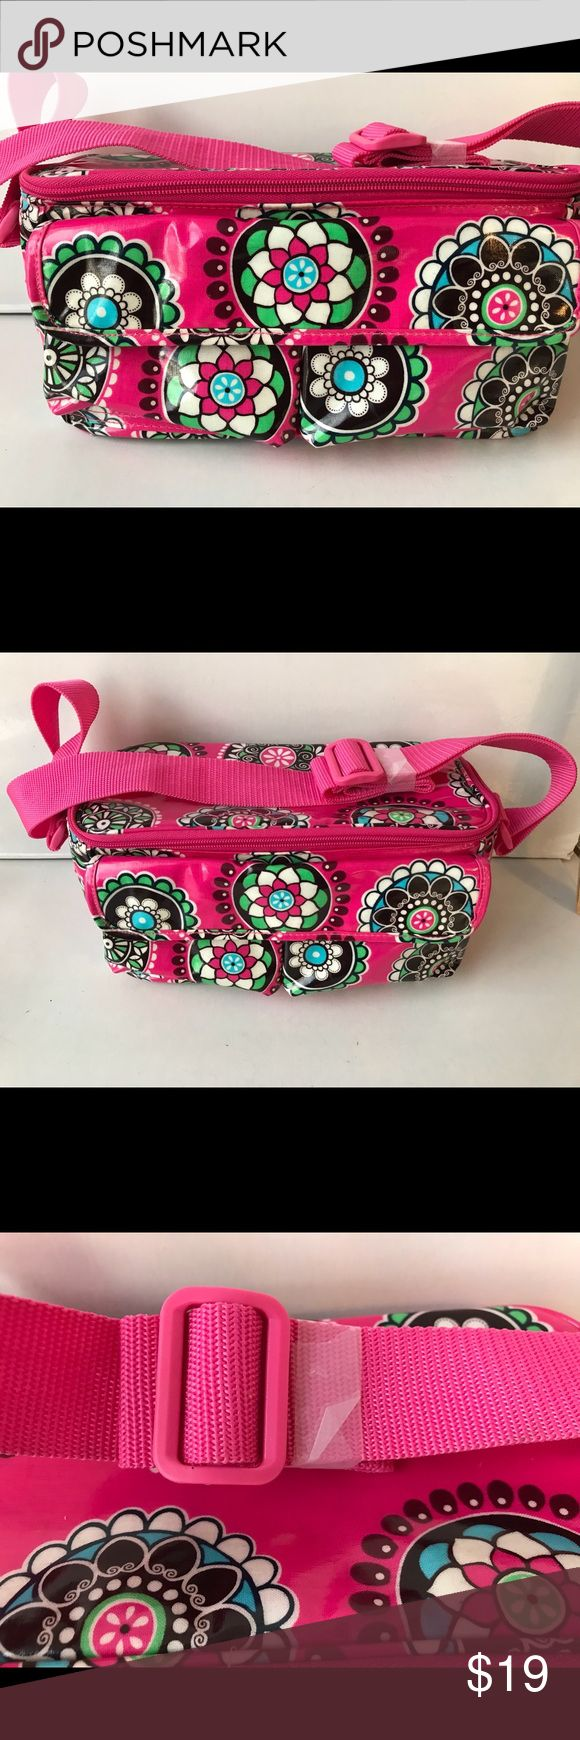 Travel in style Hot Pink Print Cooler Lunch Tote Vera Bradley Insulated Lunch Bag Tote Cooler Retire Cupcakes Pink Pattern Vinyl B8013 Bew without tags Vera Bradley Bags Travel Bags